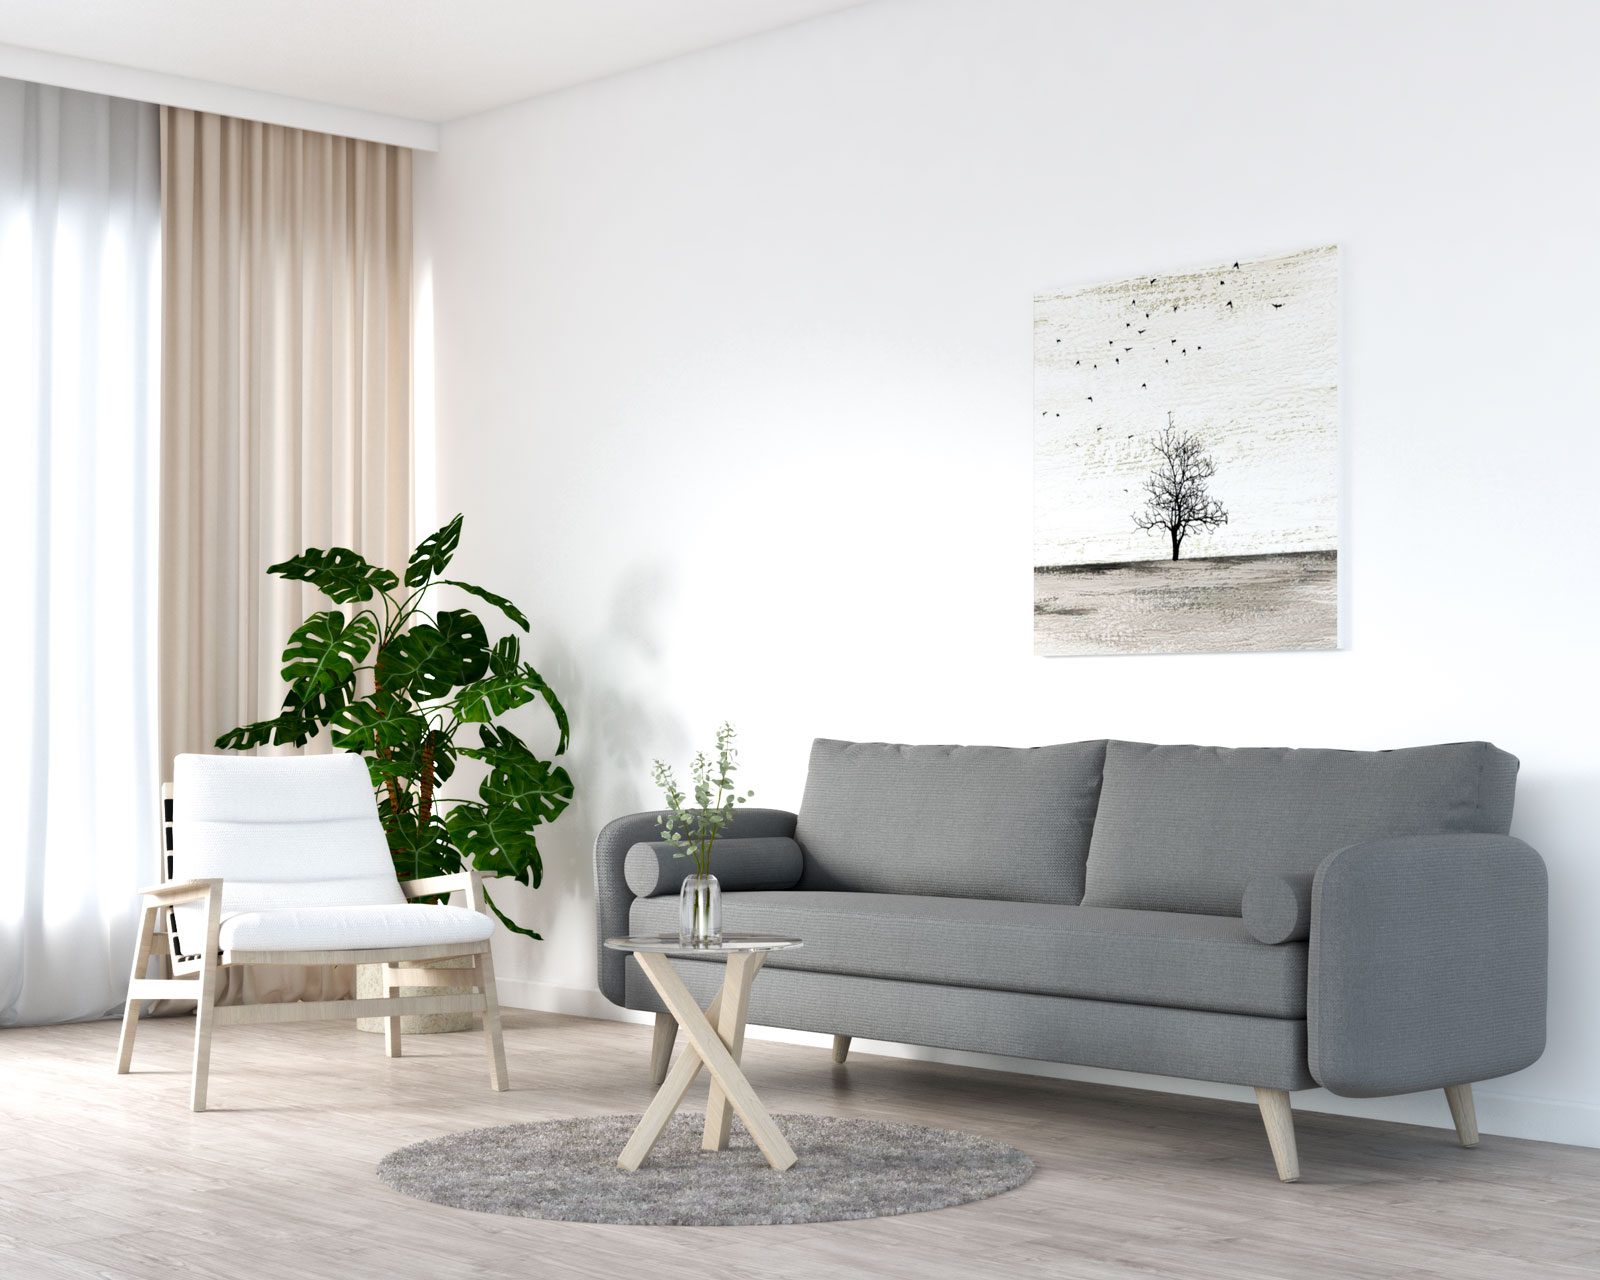 White accent chair with grey sofa